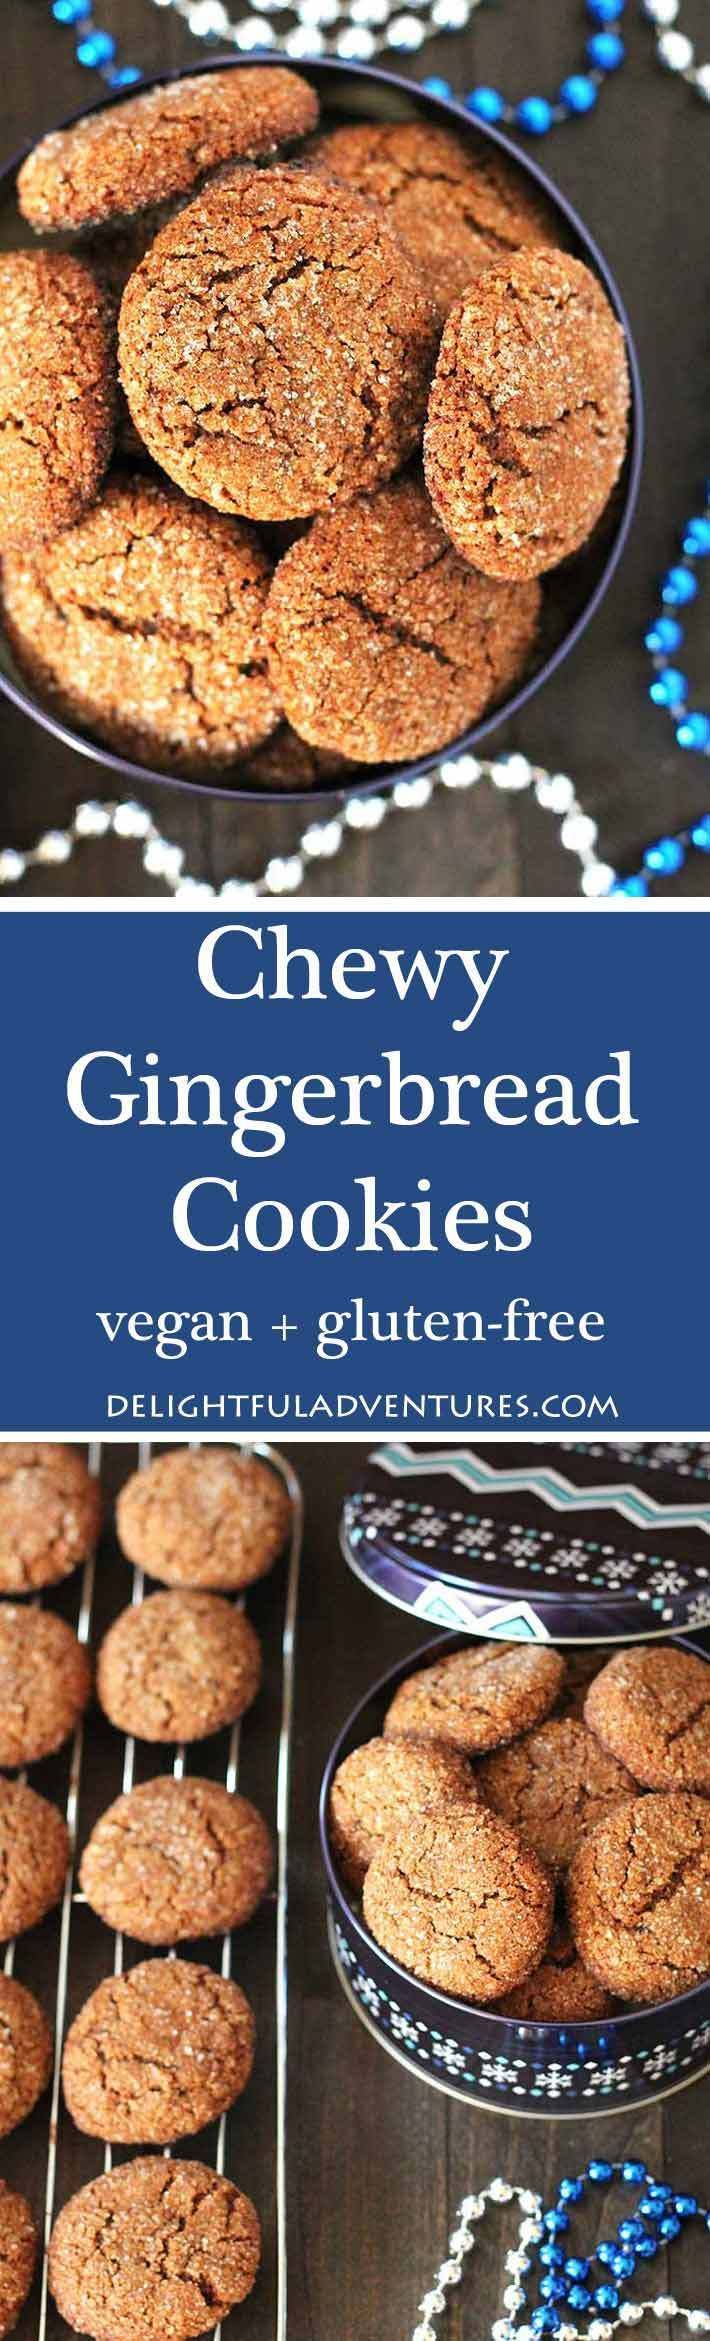 how to bake vegan cookies These no bake cookies are delicious, dairy free, vegan, and you can easily  make them gluten free get the recipe at the36thavenuecom.